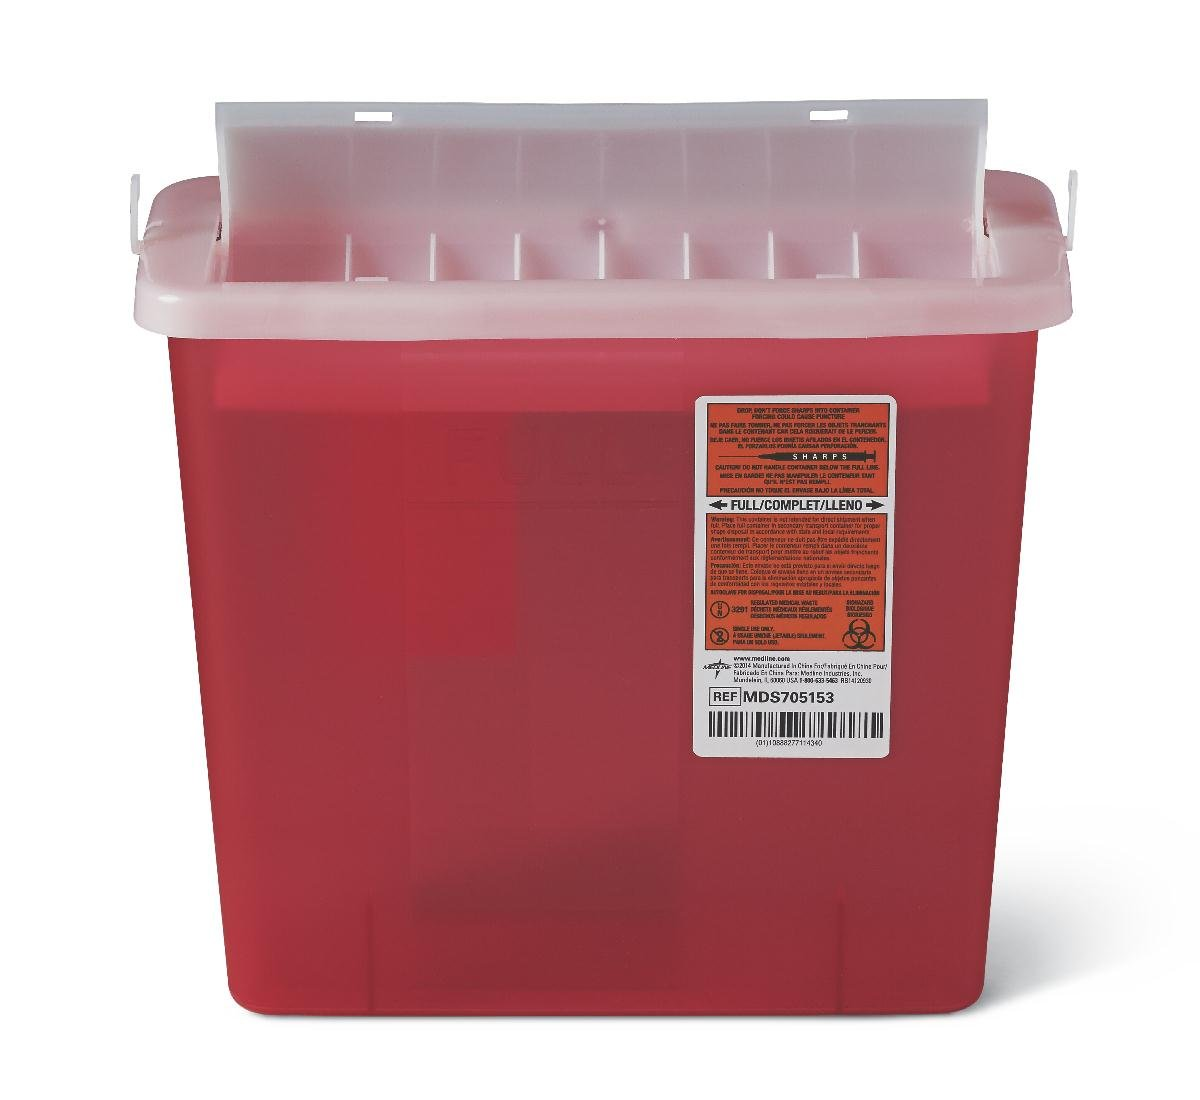 Medline MDS705153H Biohazard Patient Room Sharps Containers, 1.250 gal, Red